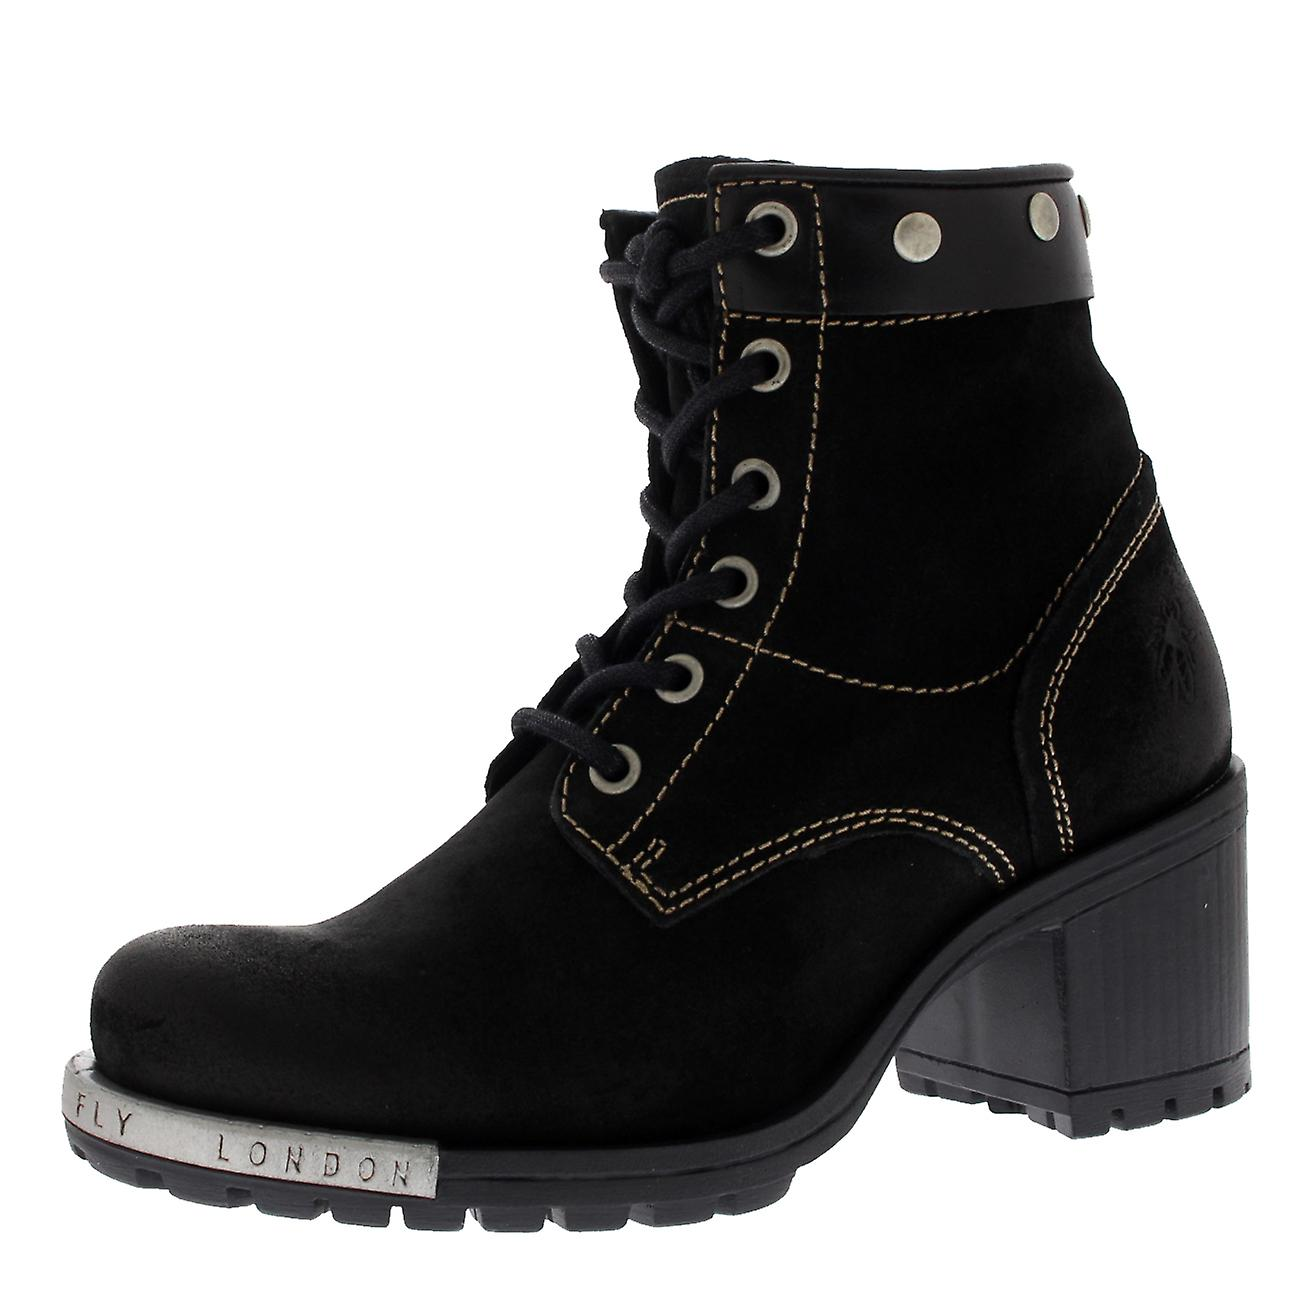 d2940d1990663 Womens Fly London Lito Suede Winter Mid Block Heel Lace Up Ankle Boots